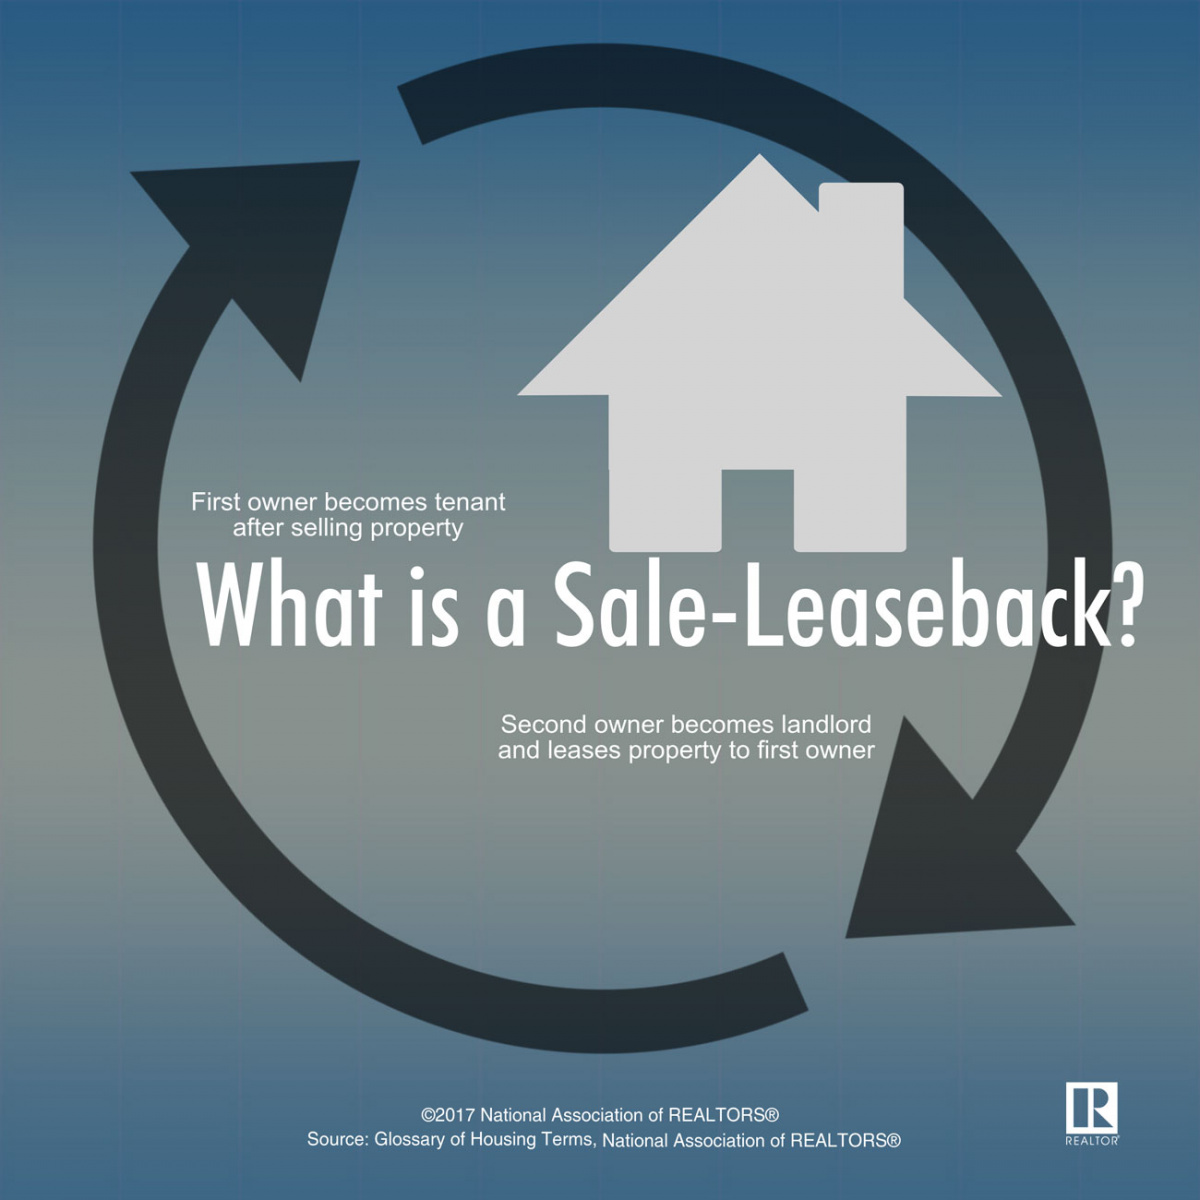 What is a Sale-Leaseback